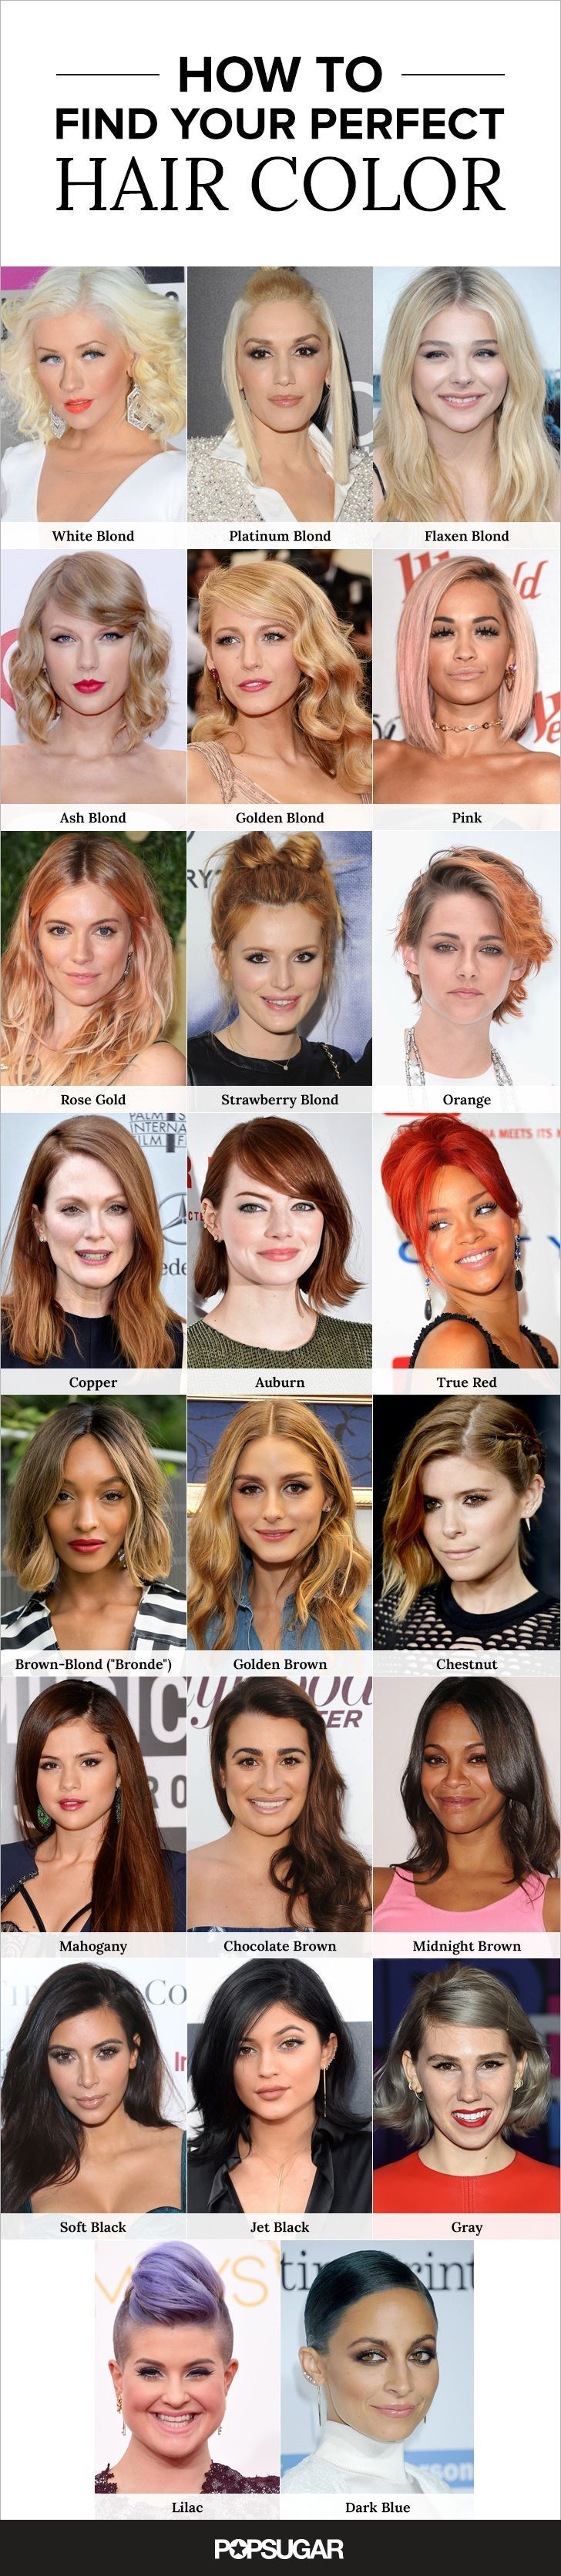 Find your perfect new hair color before your next salon visit this celebrity packed guide makes it easy to find your perfect hair color geenschuldenfo Image collections